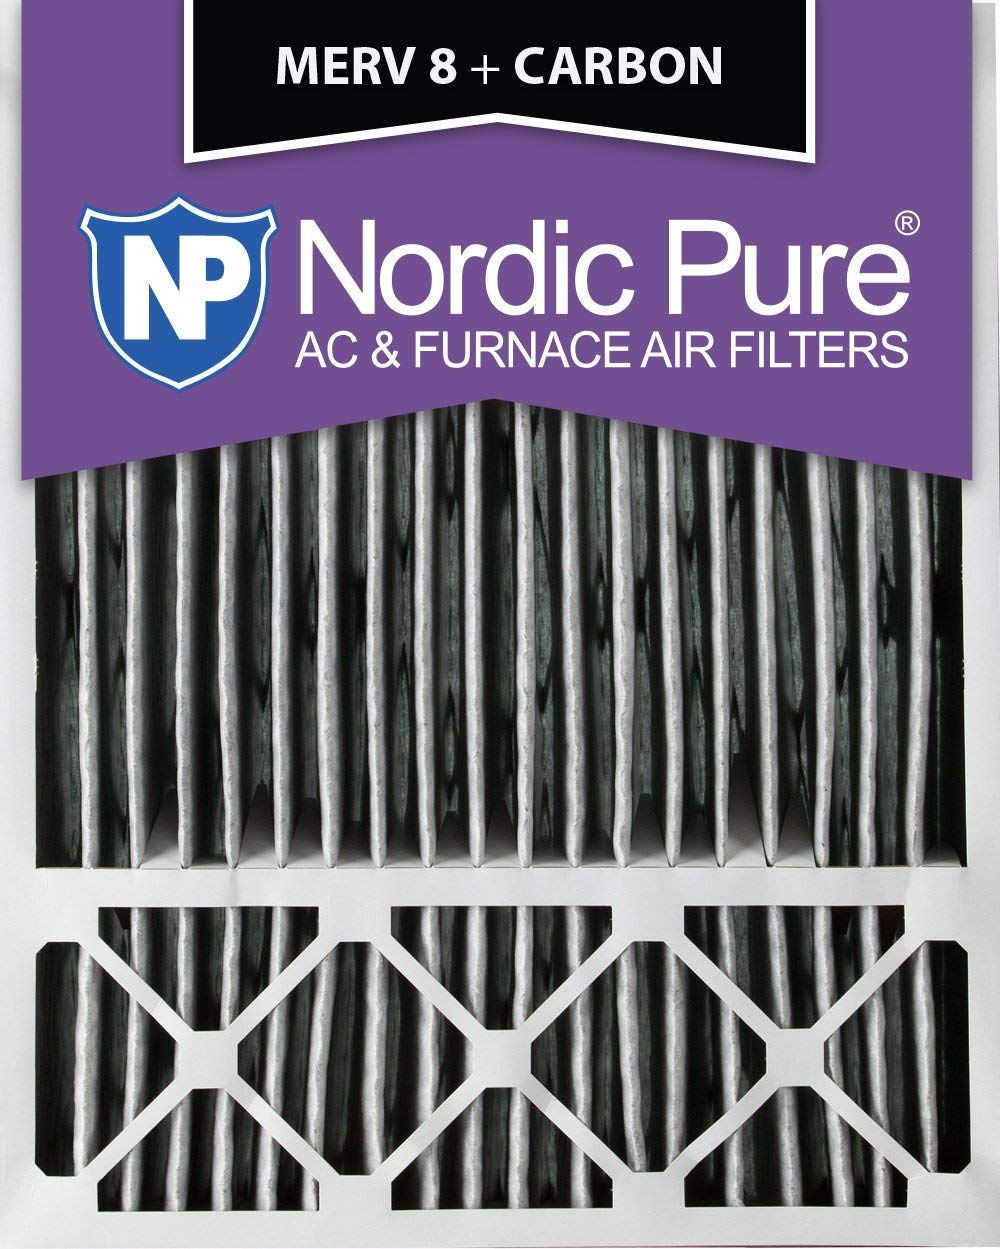 Nordic Pure 20x25x5 (4-3/8 Actual Depth) Honeywell Replacement Pleated MERV 8 Plus Carbon AC Furnace Air Filter, Box of 4